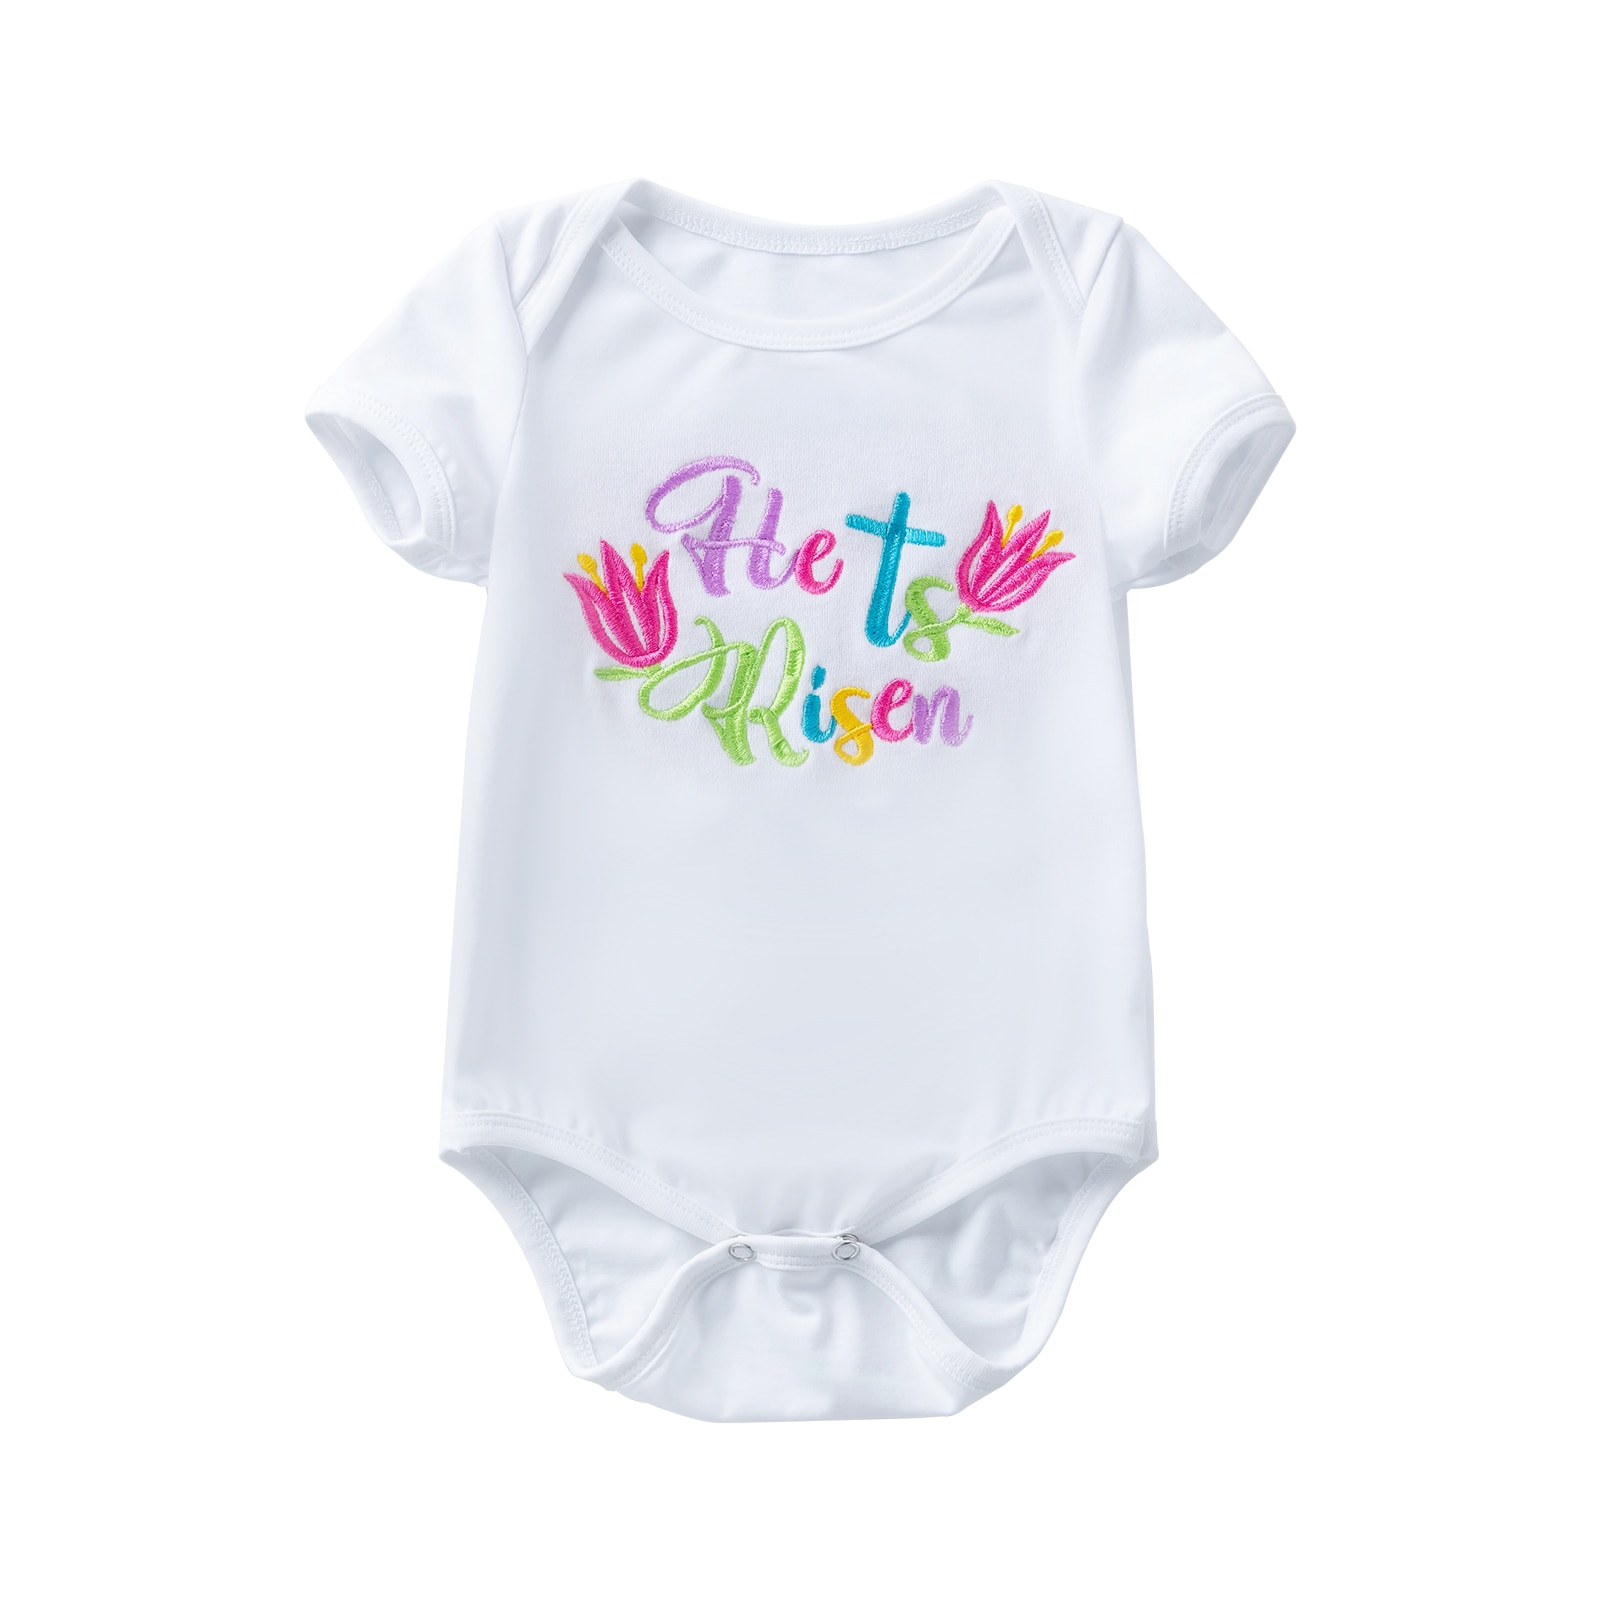 Newborn Baby Girl or Boy Fashion Clothes for 0-2 year Kid Romper Cotton Child Easter Day Party Cross Embroidery&Printing Costume